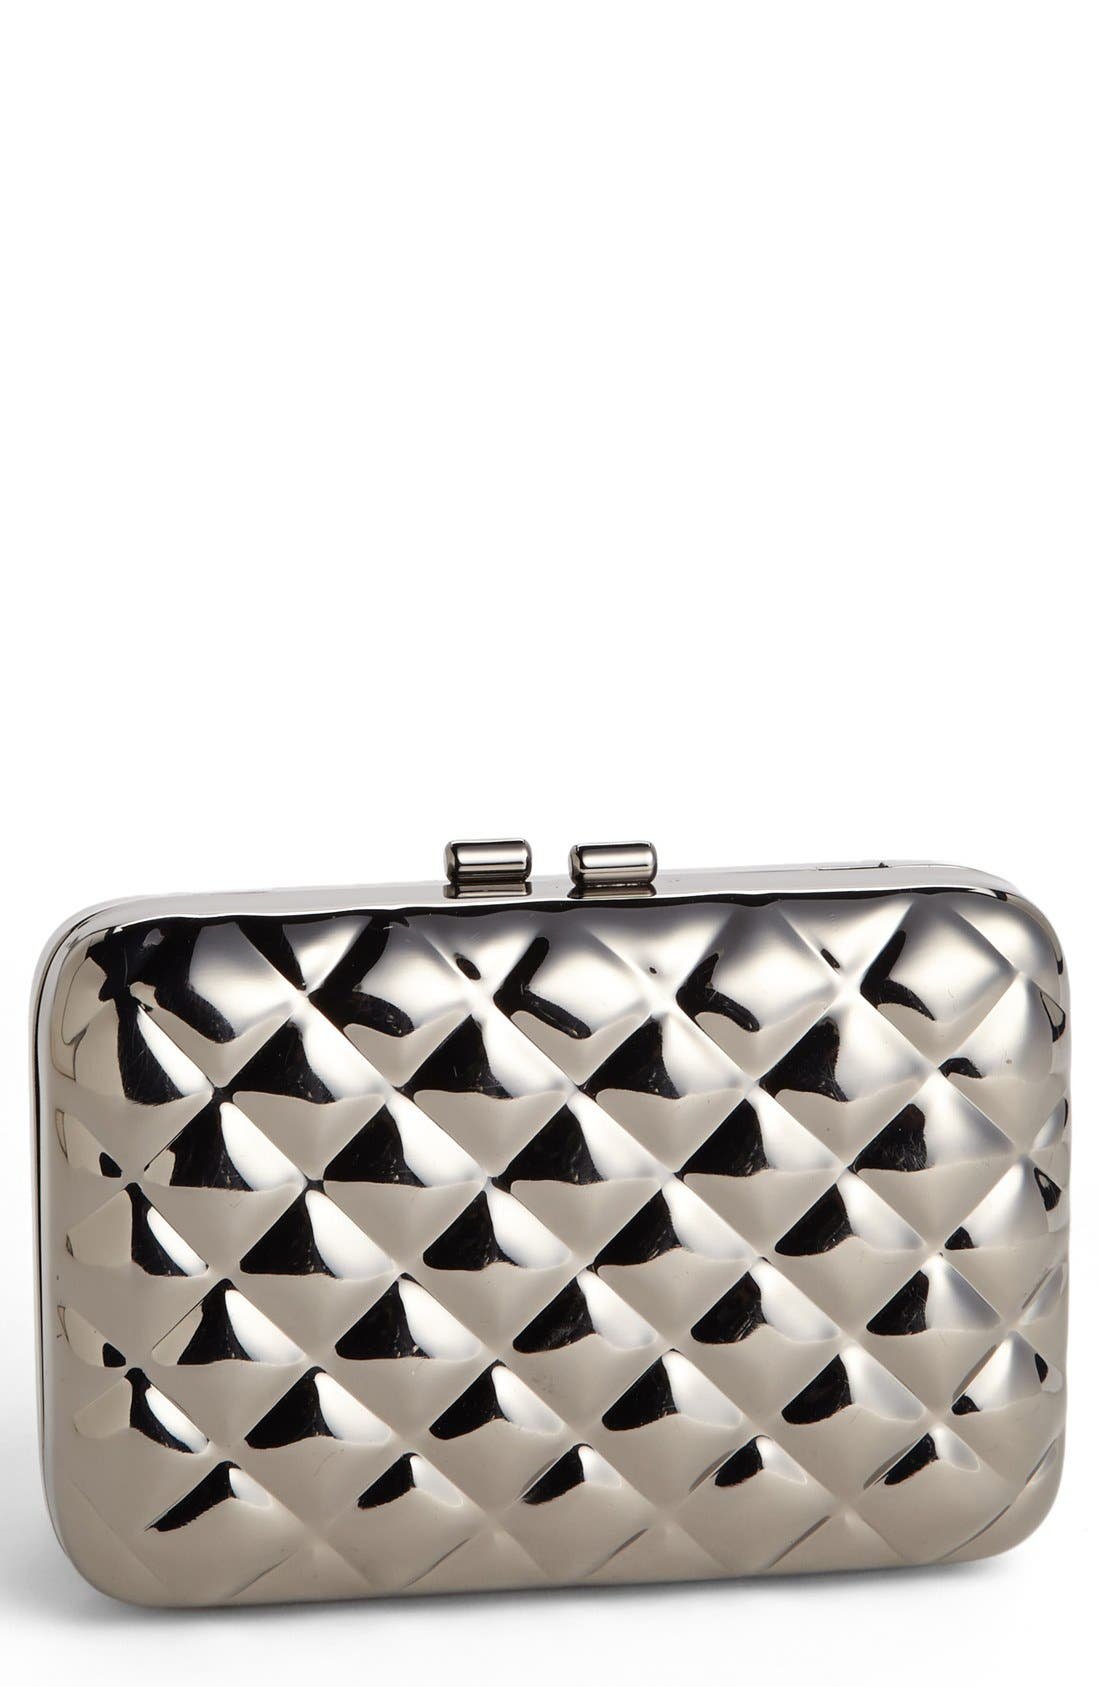 Quilted Metal Clutch,                             Main thumbnail 1, color,                             Gunmetal